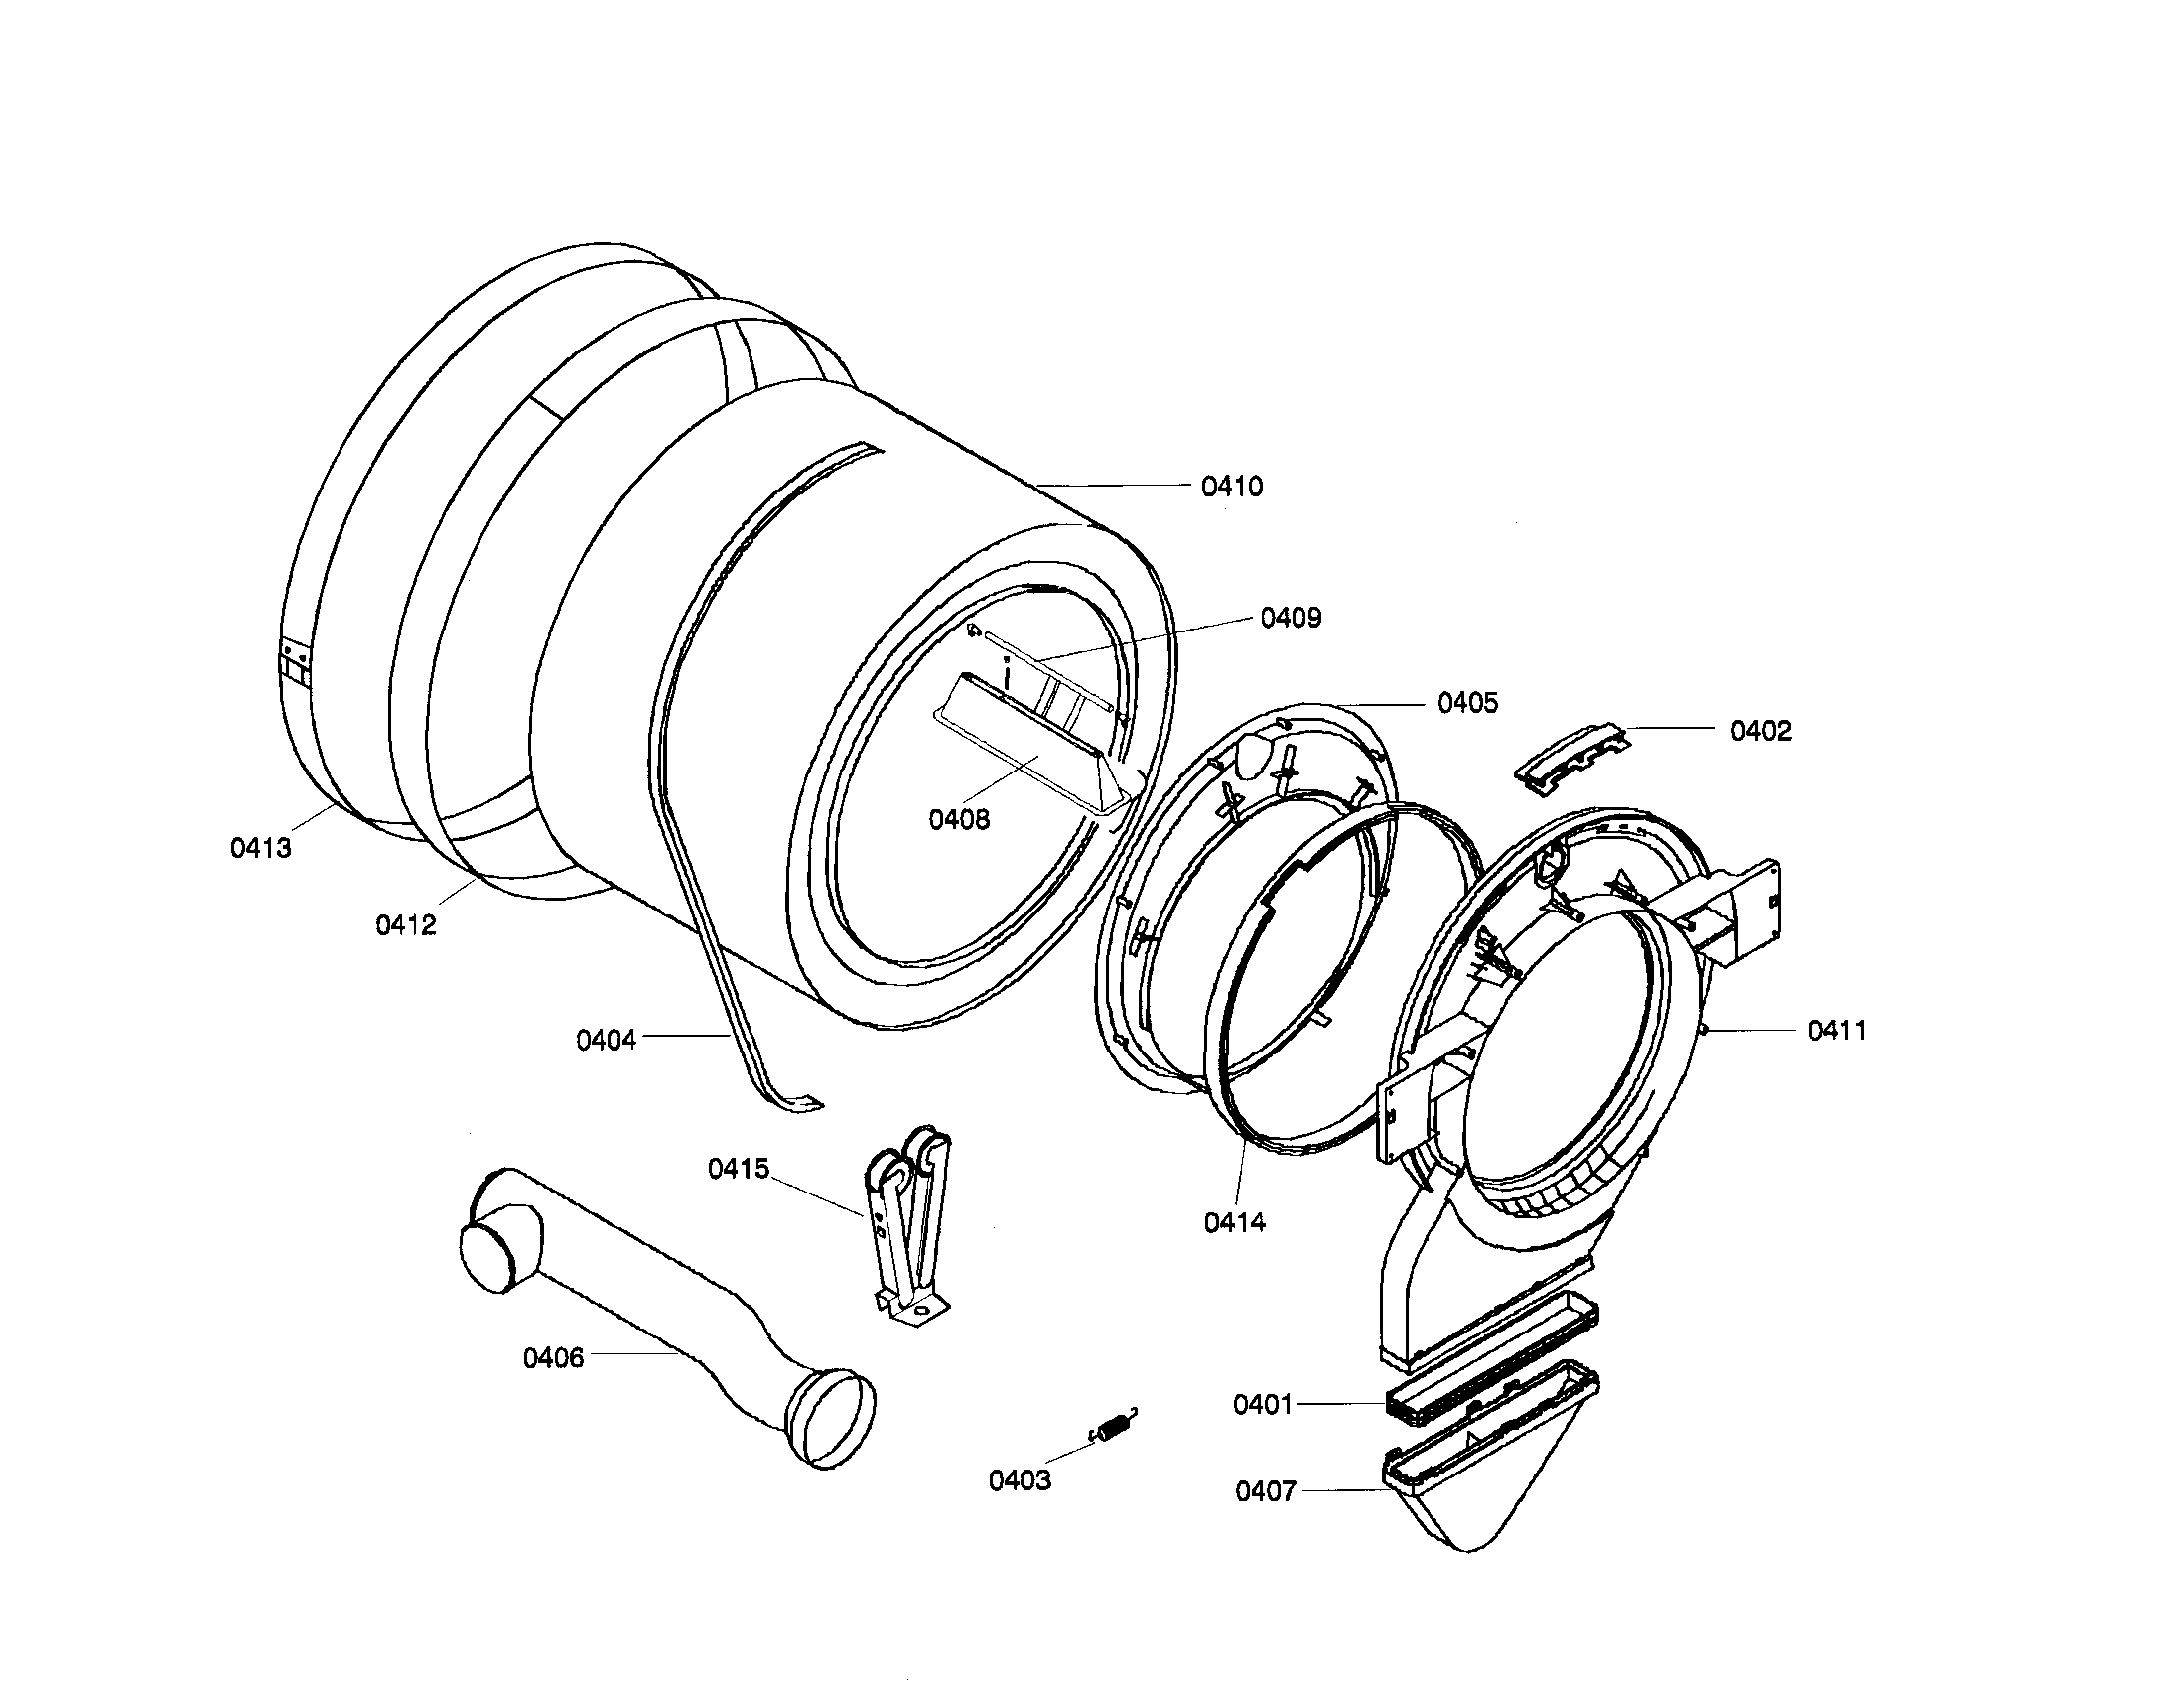 Bosch WTA4400US/01 drum assembly diagram